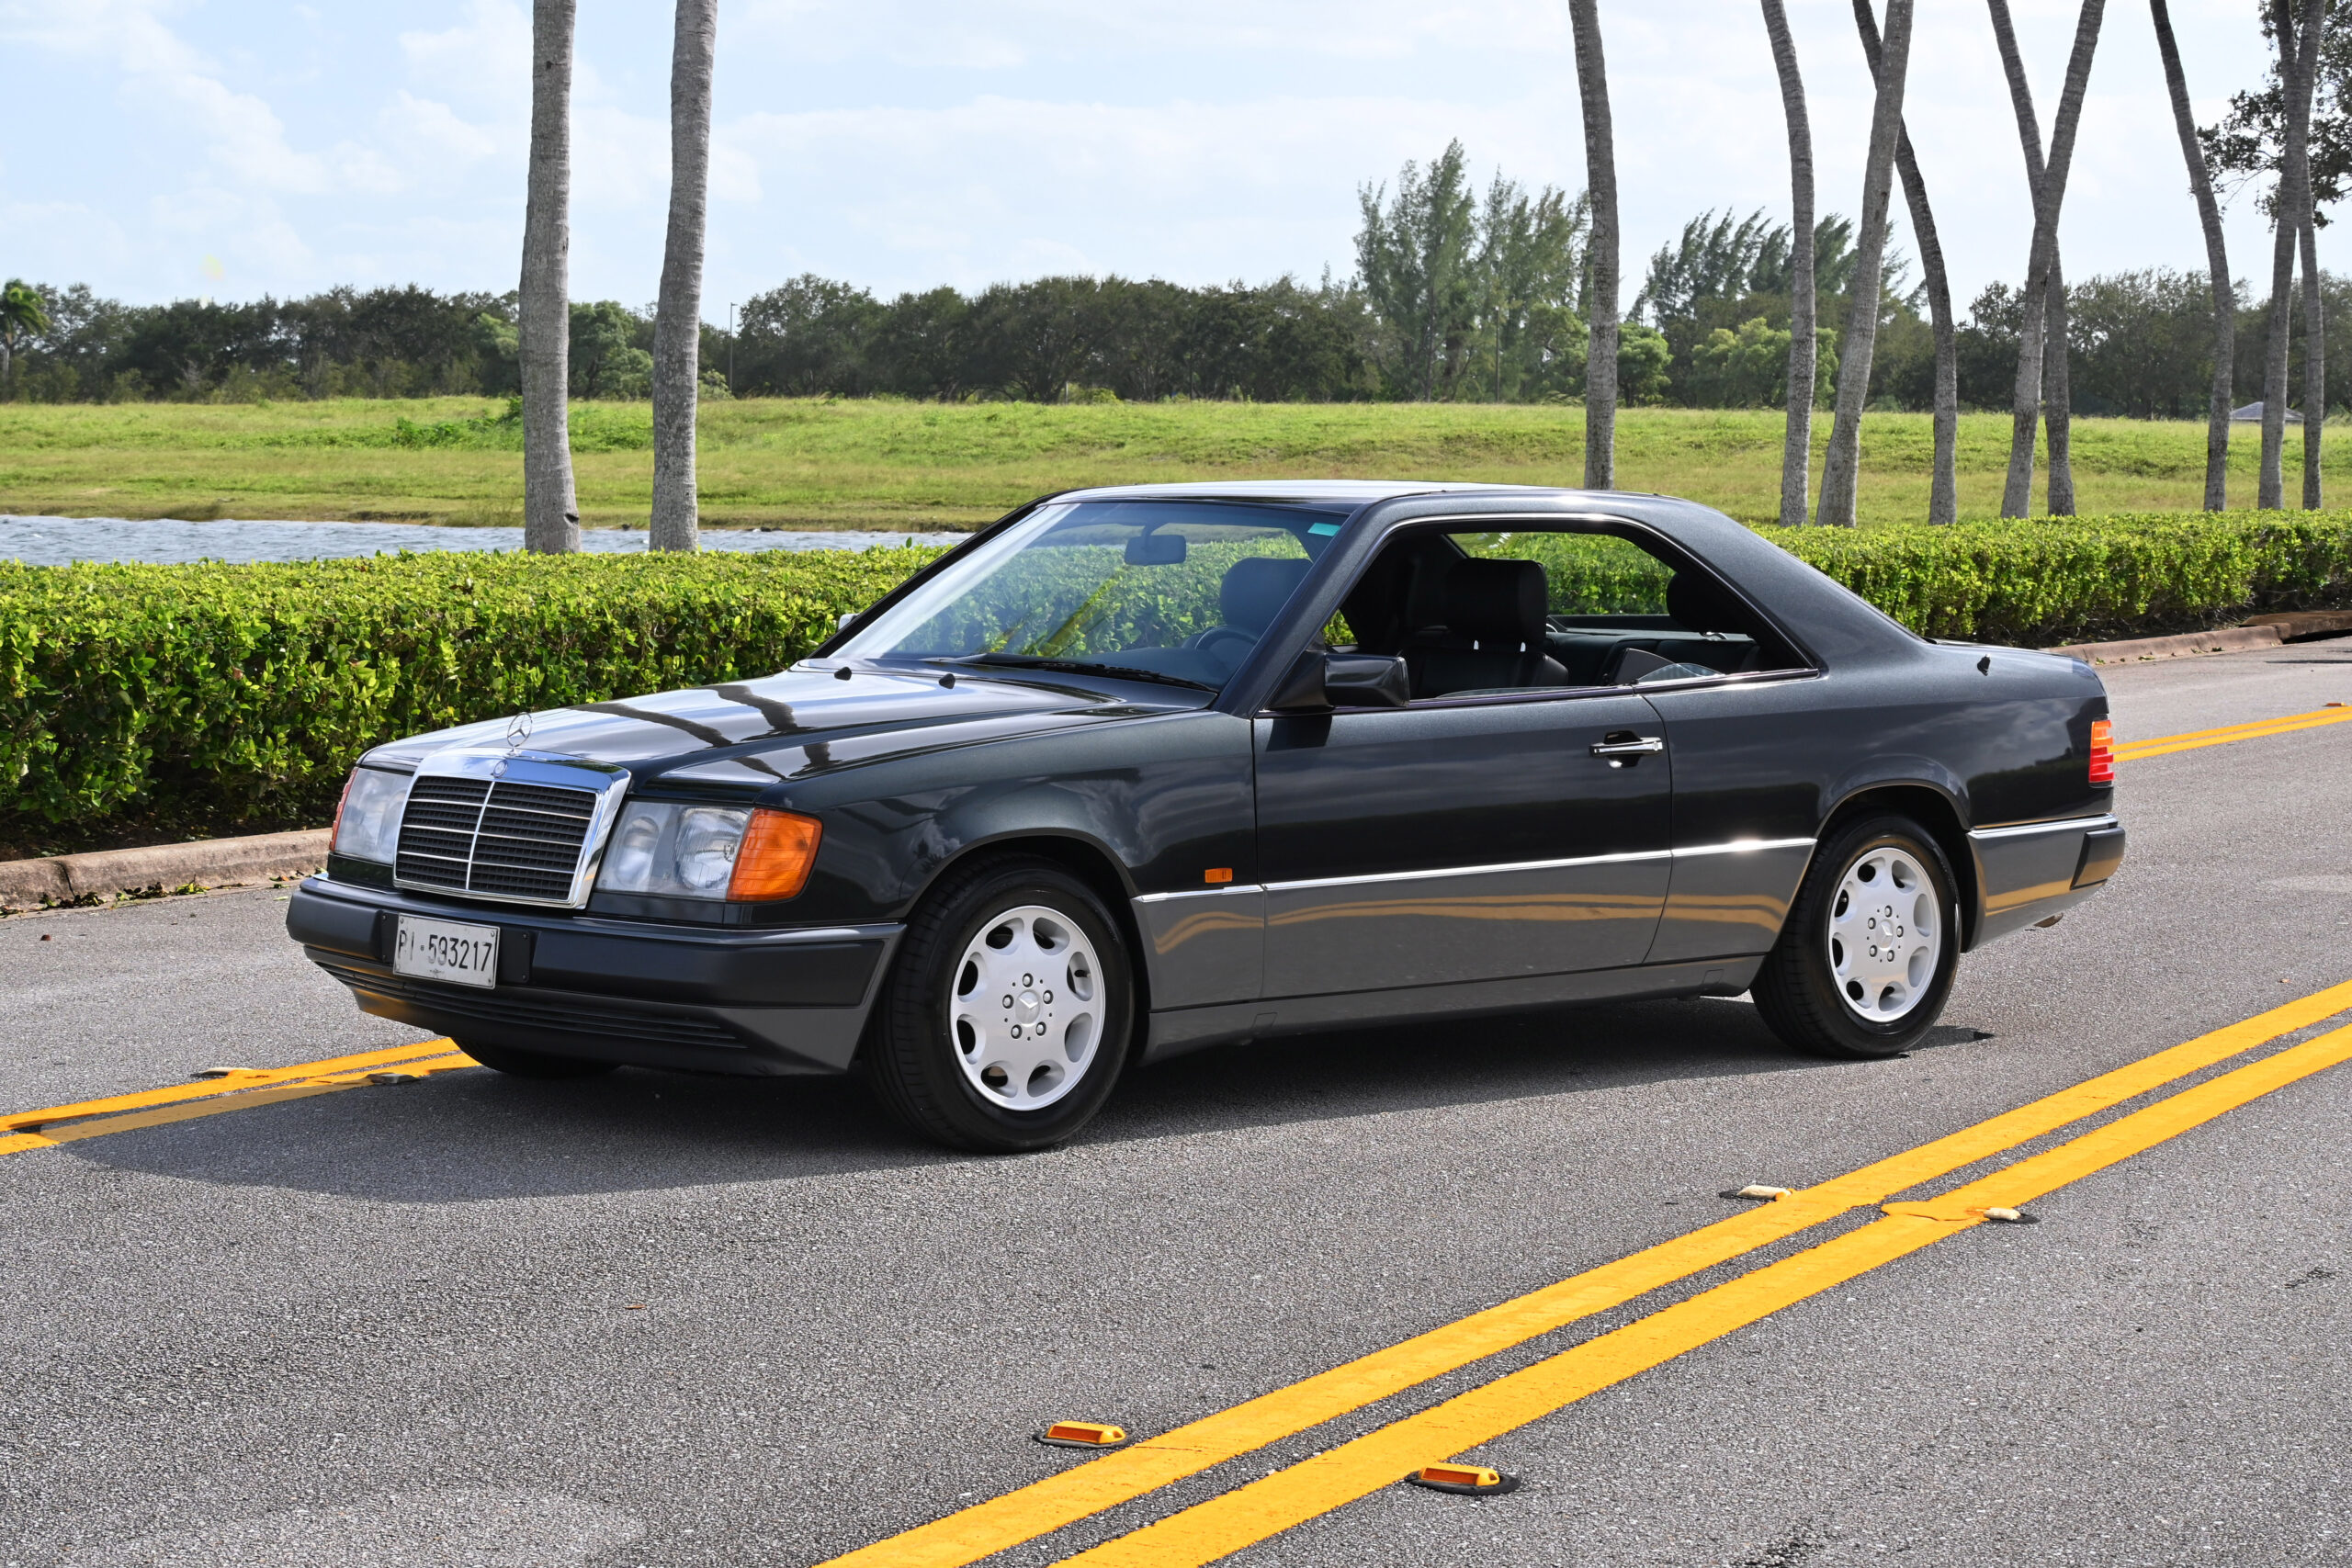 1992 Mercedes-Benz 300 CE-24V, Rare factory 5-Speed dogleg, sunroof delete, Sport Suspension and Limited Slip, in almost new condition, one owner